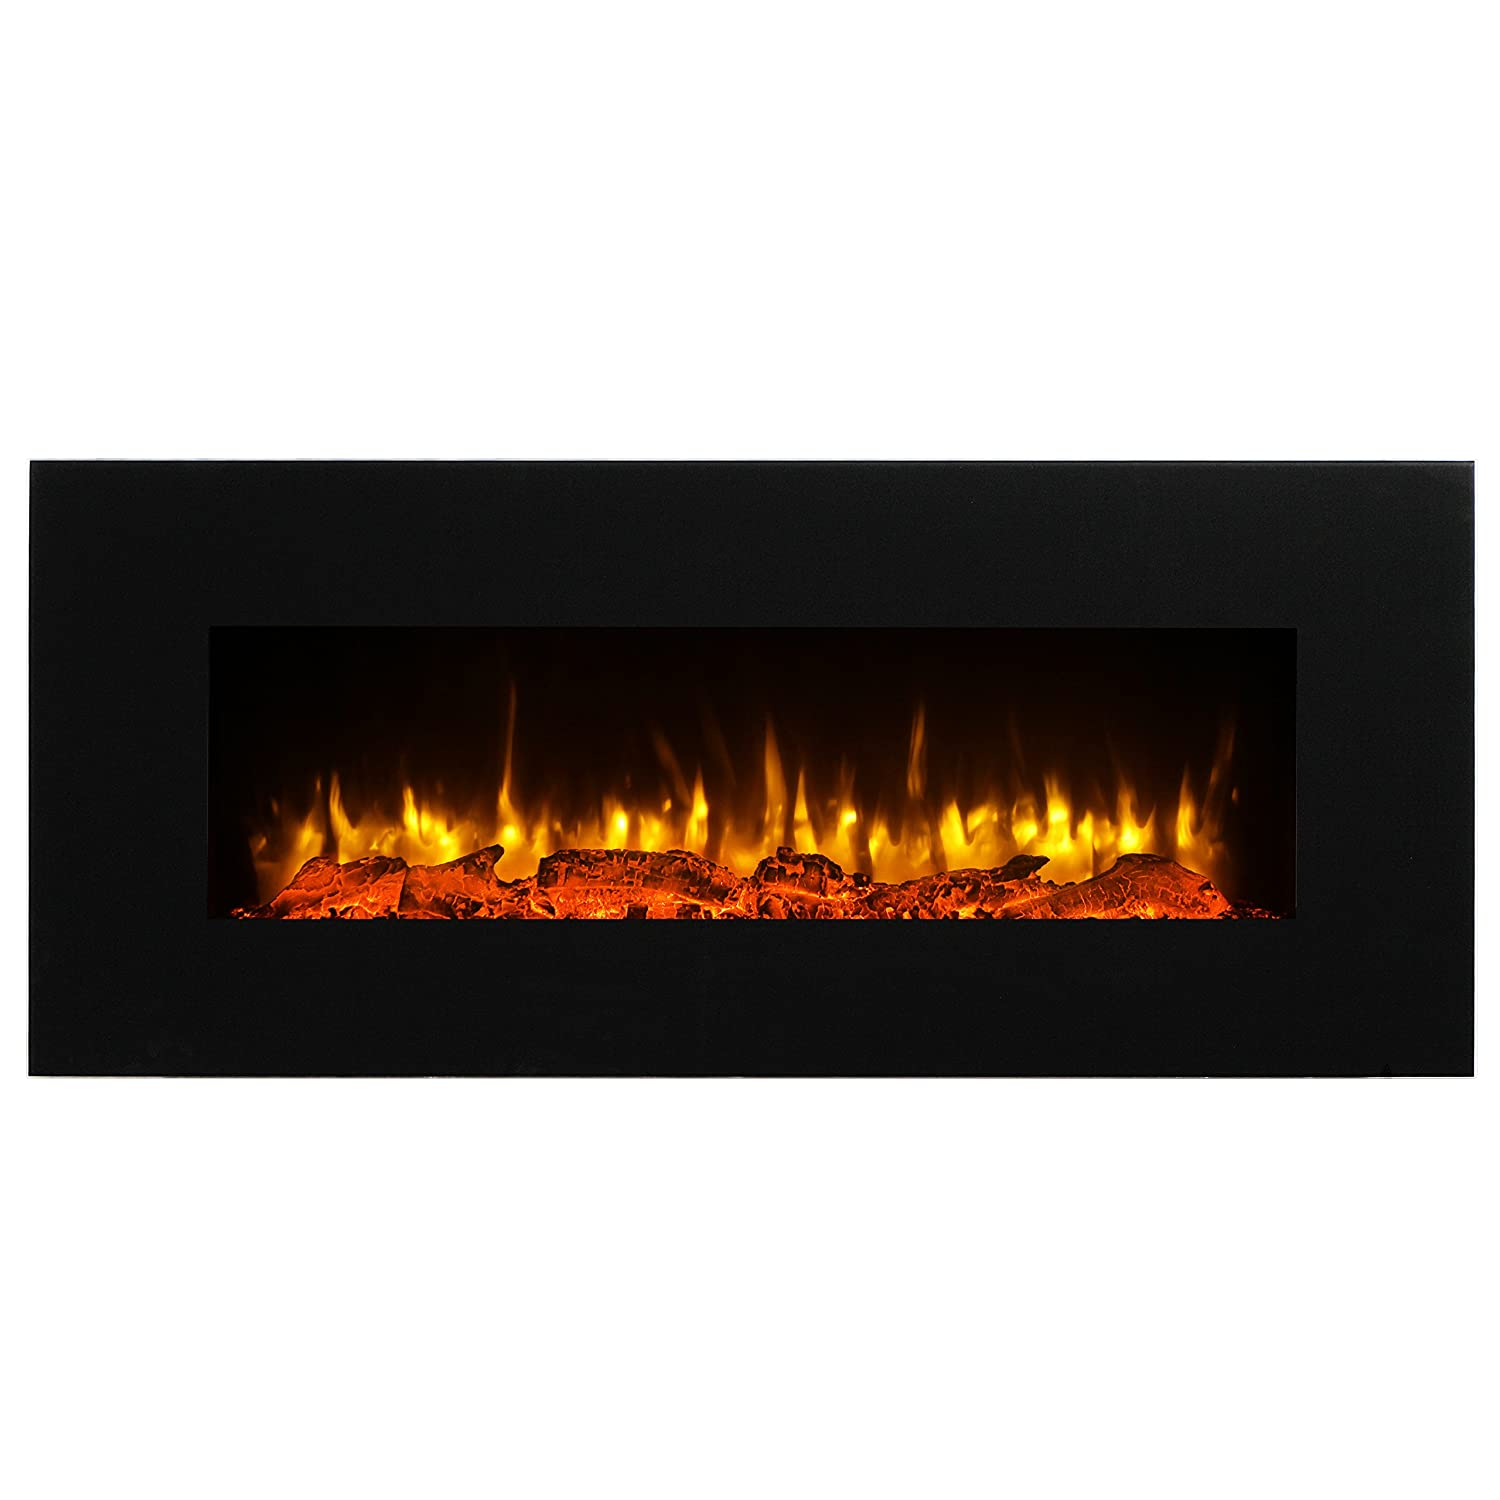 PuraFlame Serena 50 Inches Wall Mounted Linear Electric Fireplace, Log Set, Remote Control, 1500W, Black